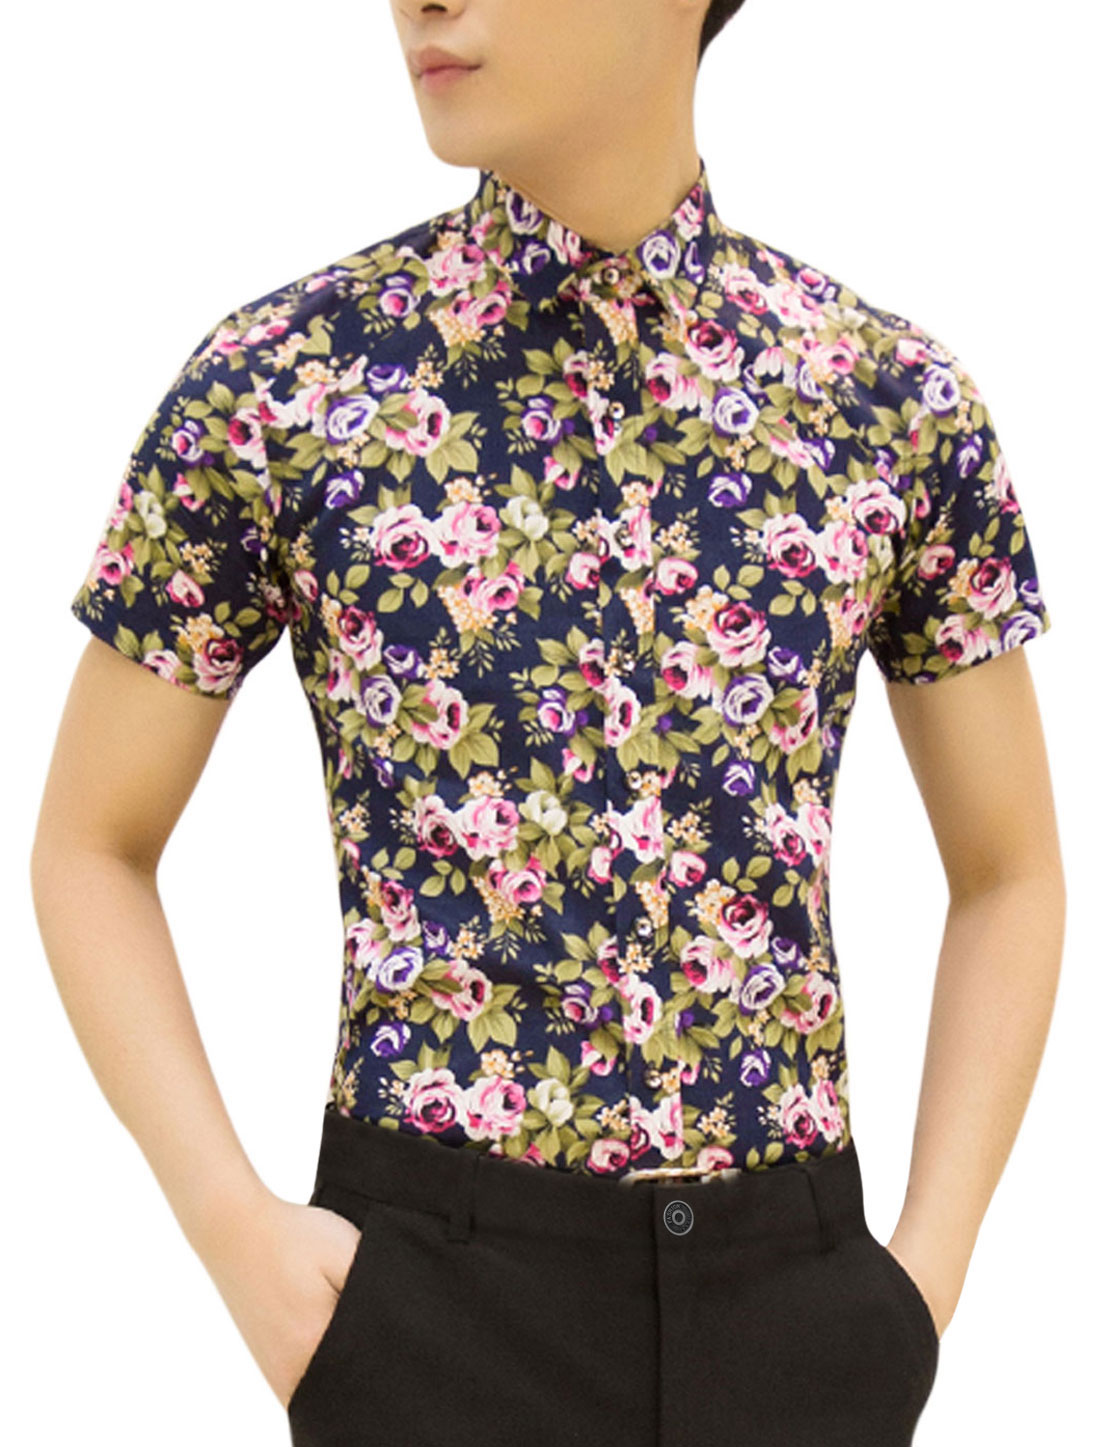 Man Point Collar Allover Prints Button Down Shirts Navy Blue Fuchsia M